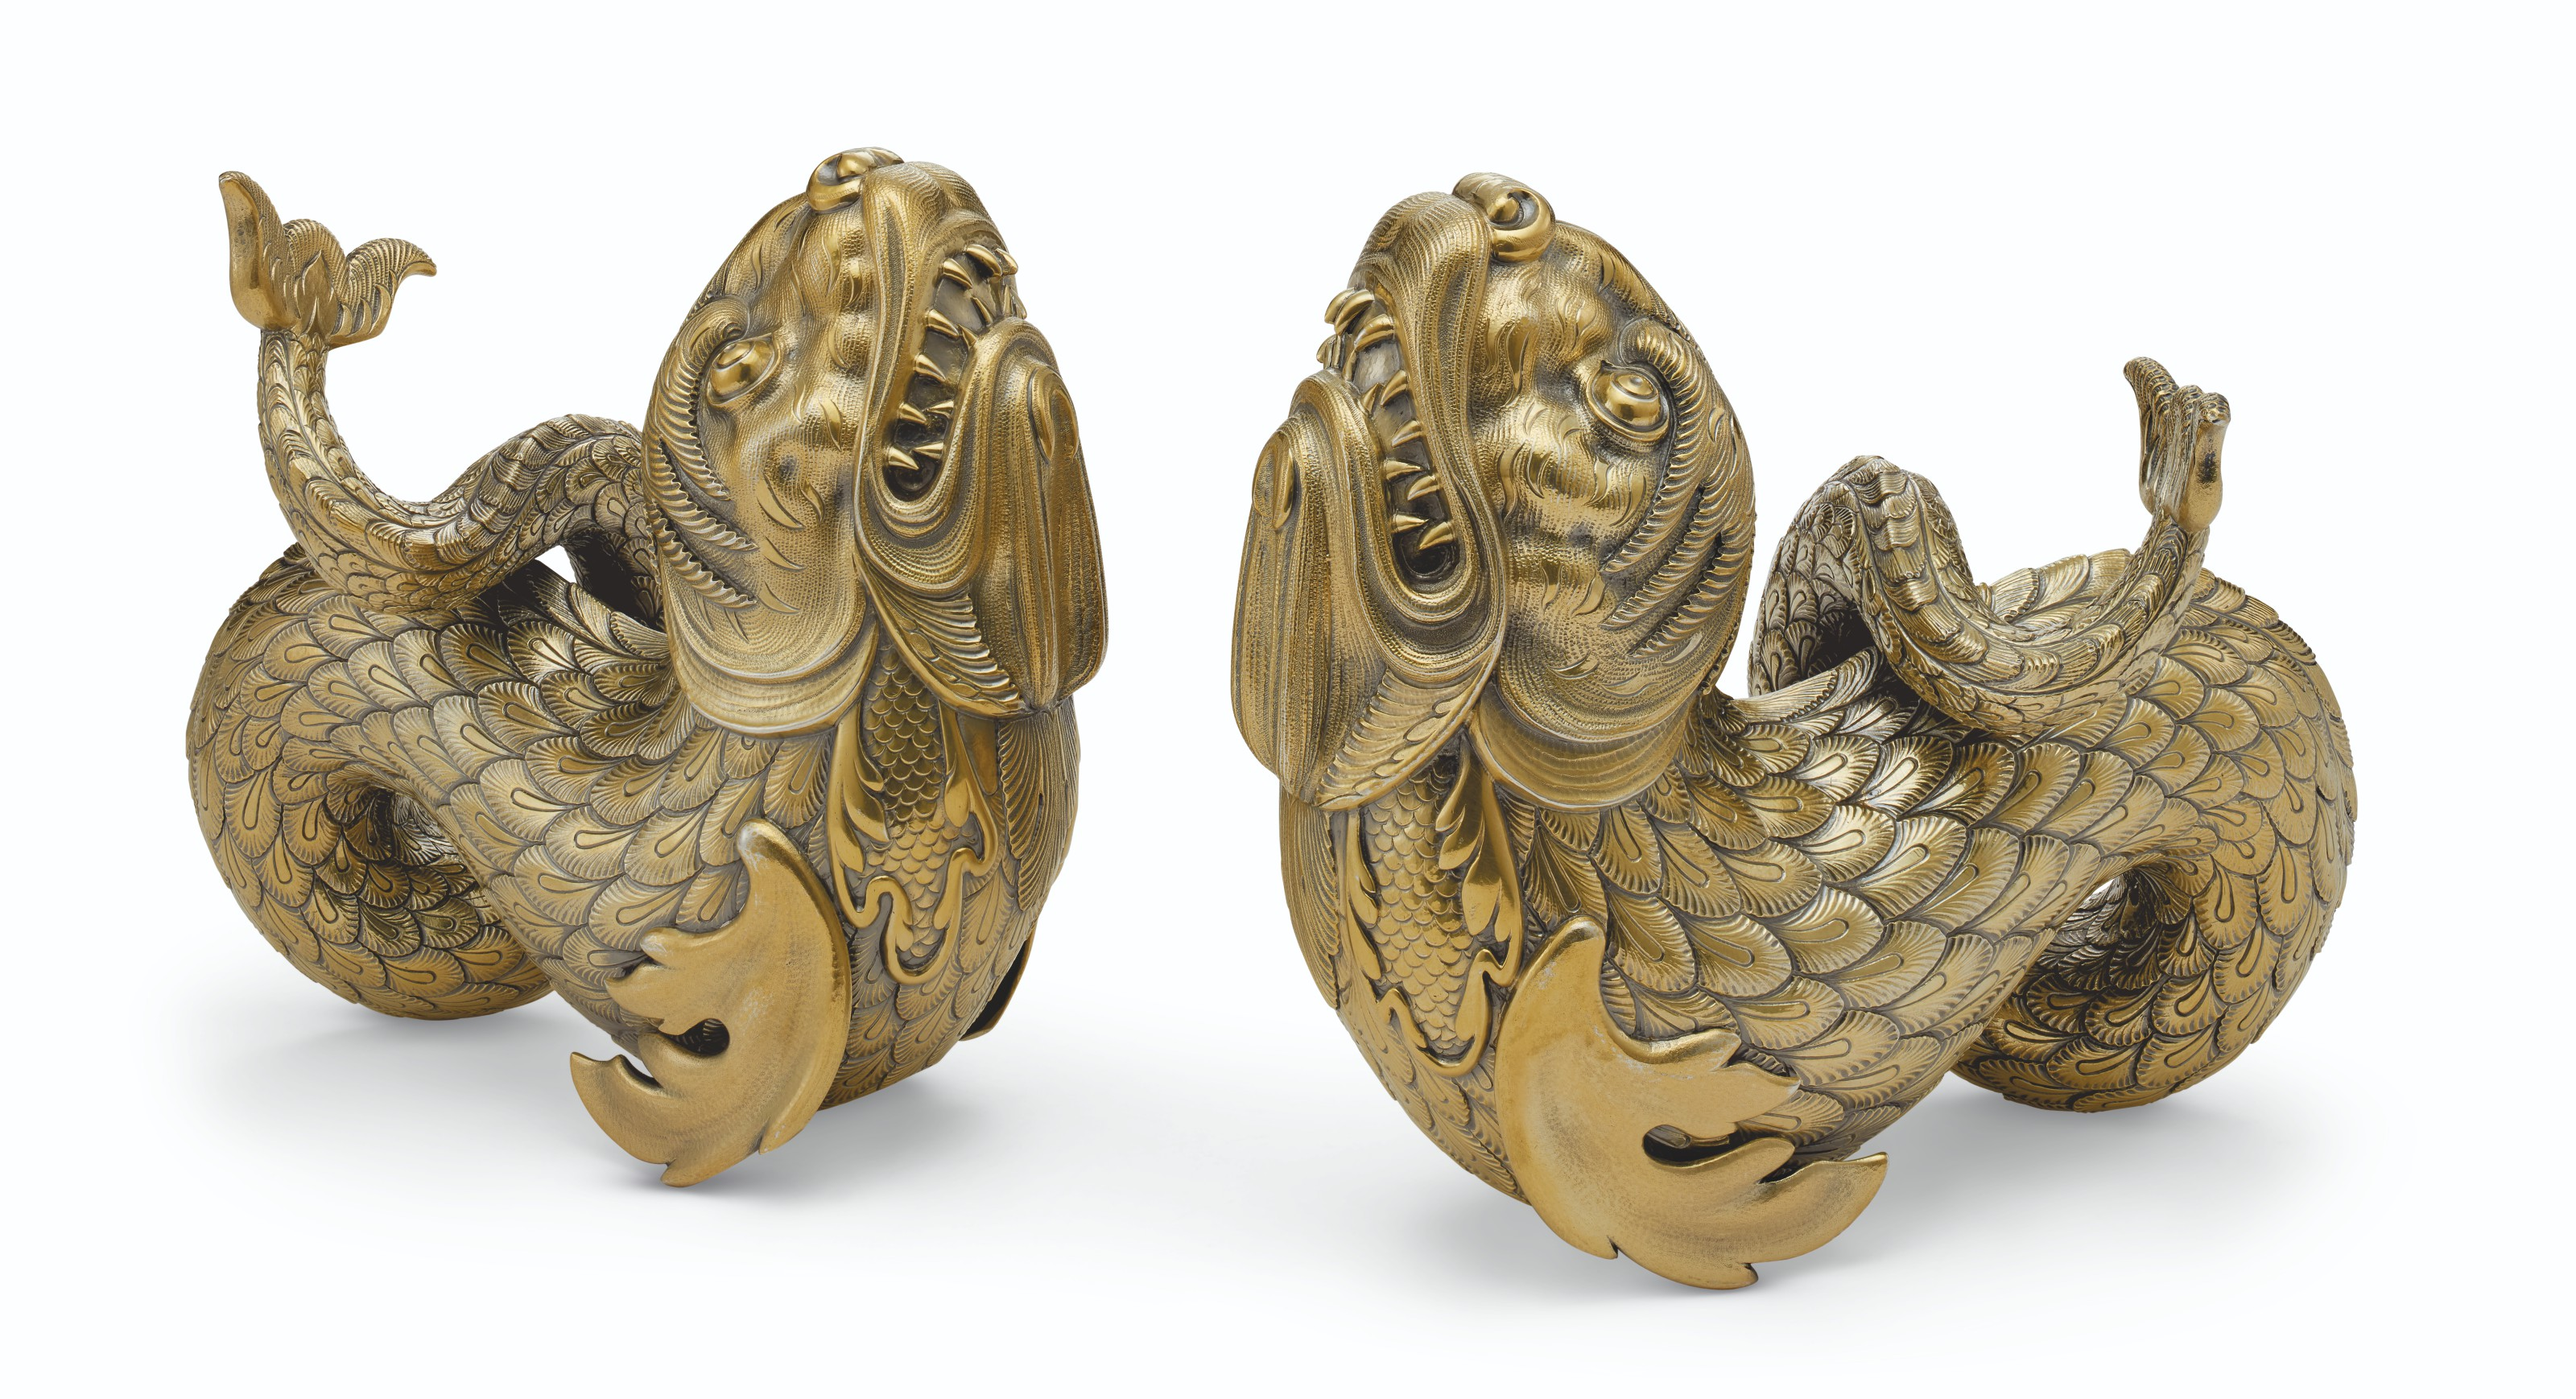 A PAIR OF SILVER-GILT FIGURES OF DOLPHINS